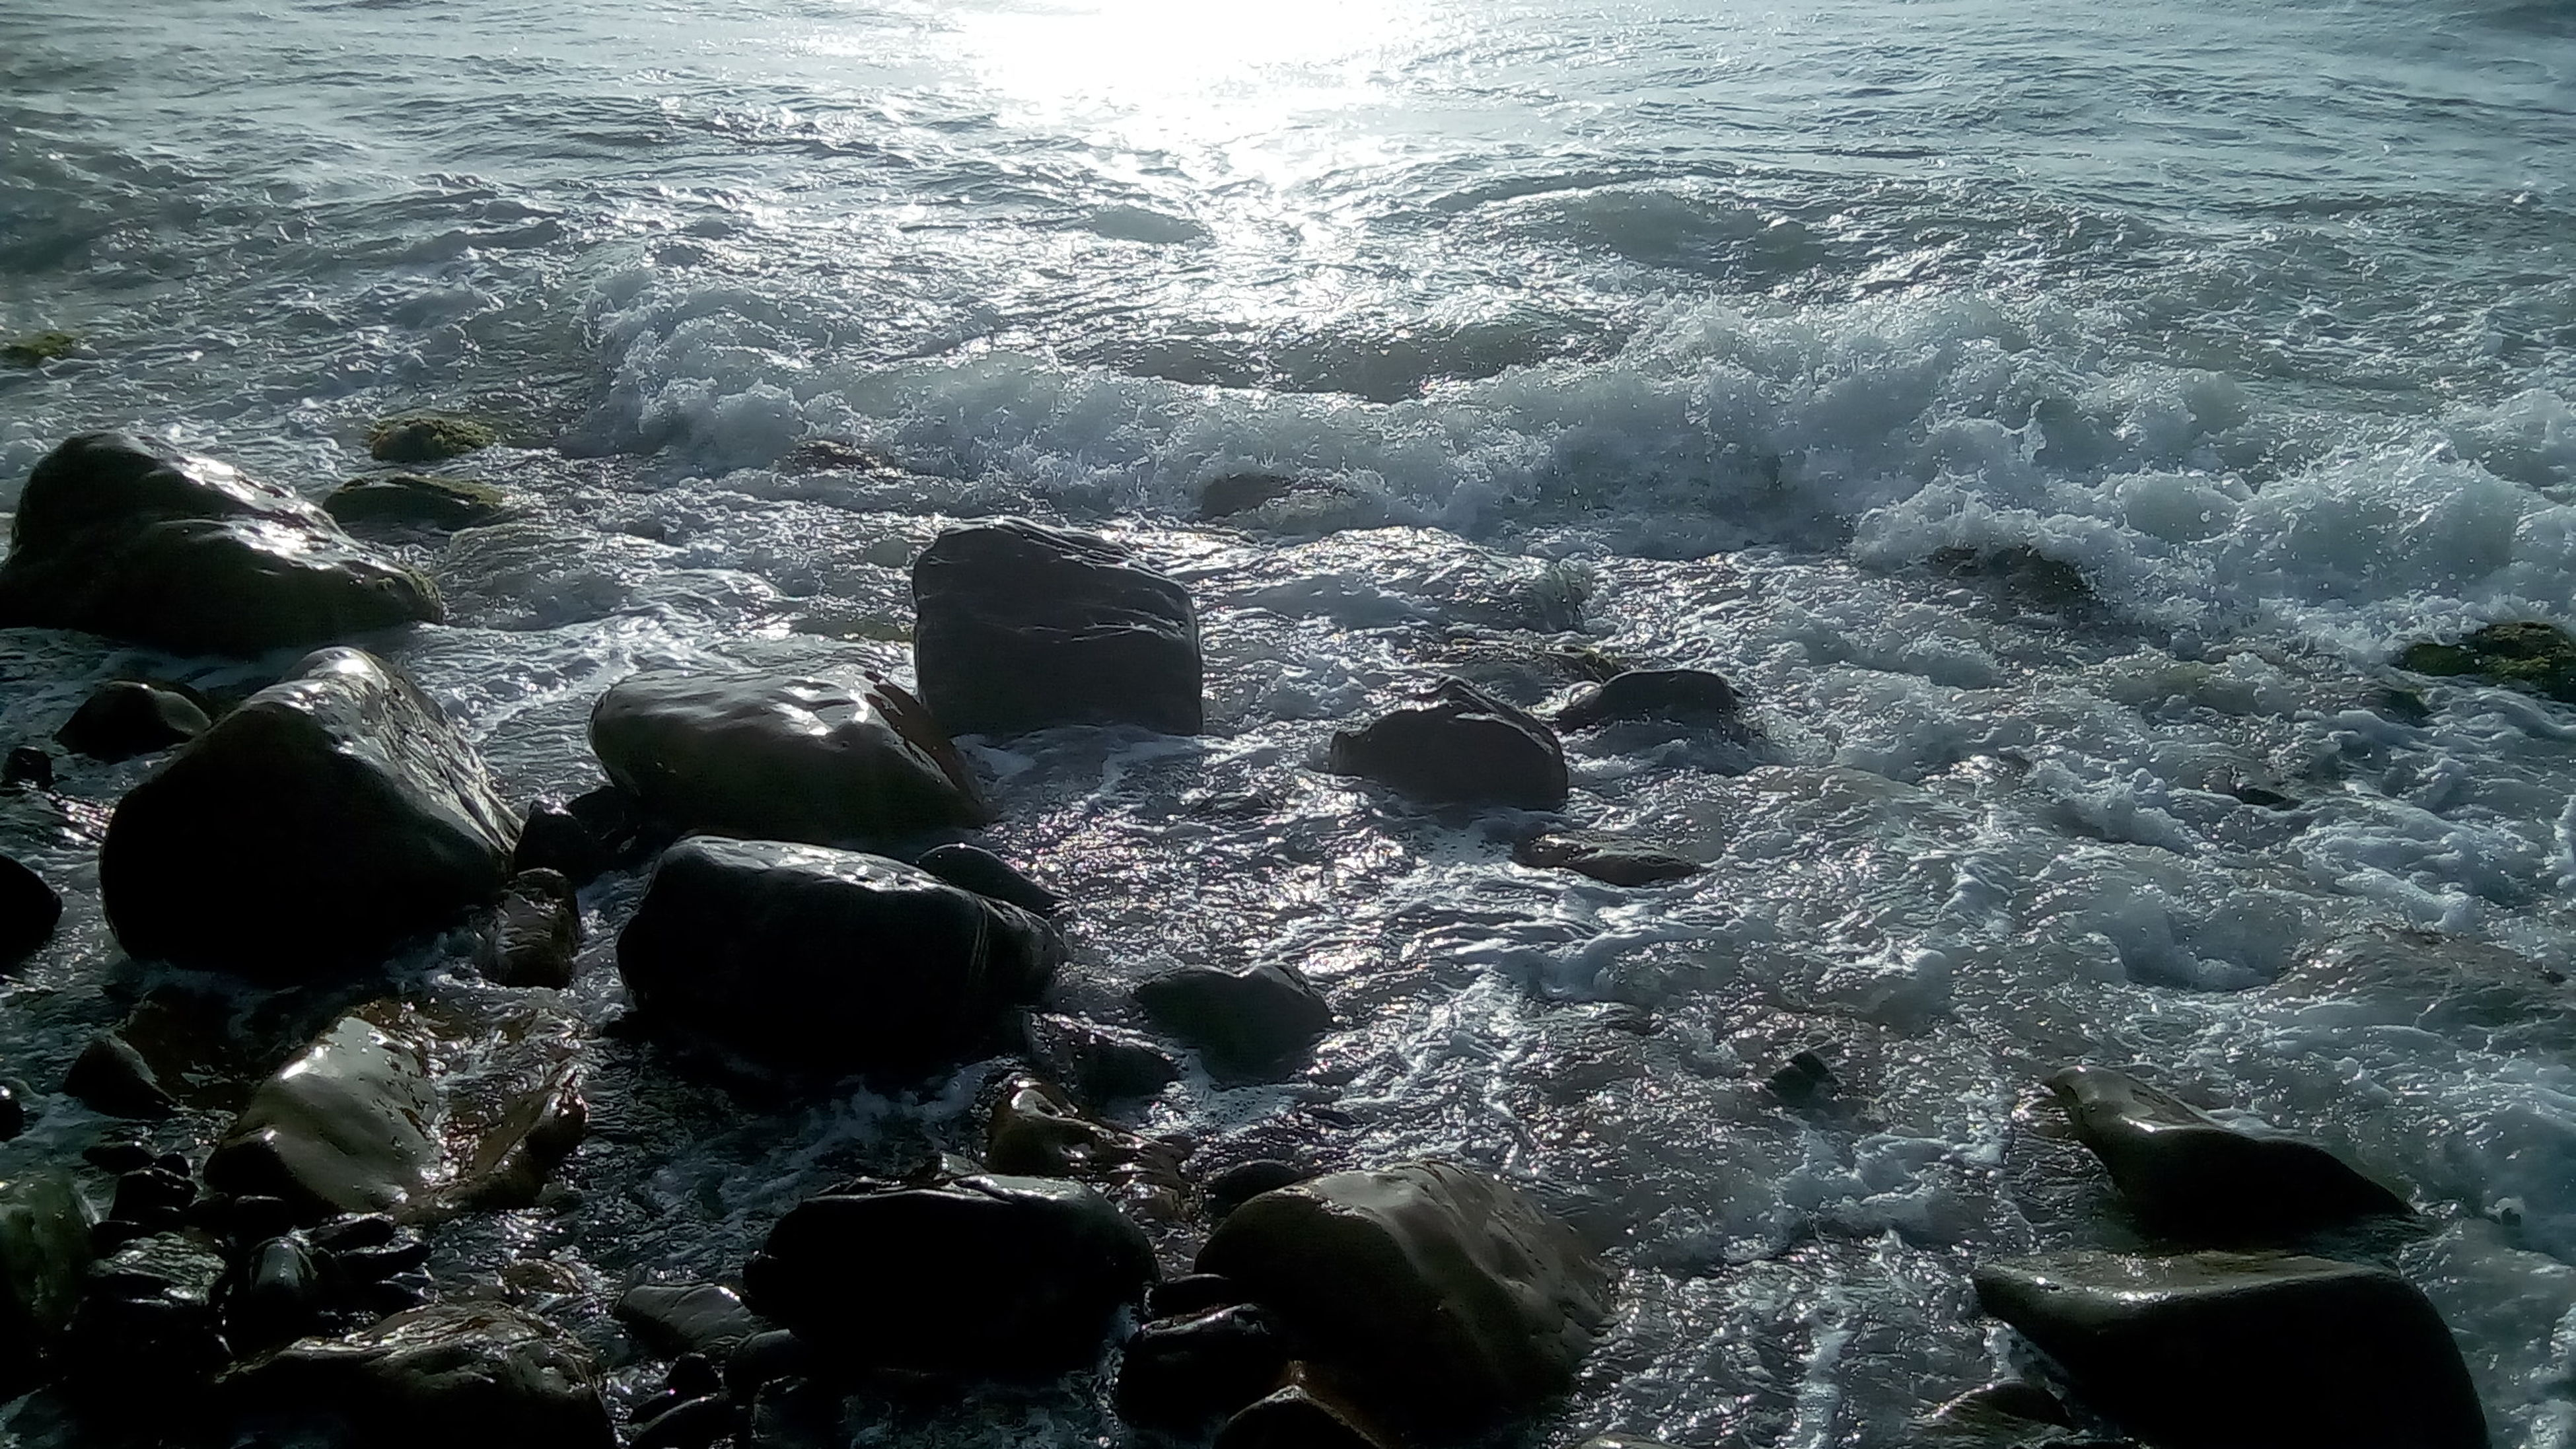 water, sea, shore, wave, rock - object, nature, tranquility, beauty in nature, rippled, stone - object, outdoors, scenics, day, no people, backgrounds, full frame, tranquil scene, idyllic, remote, non-urban scene, close-up, elevated view